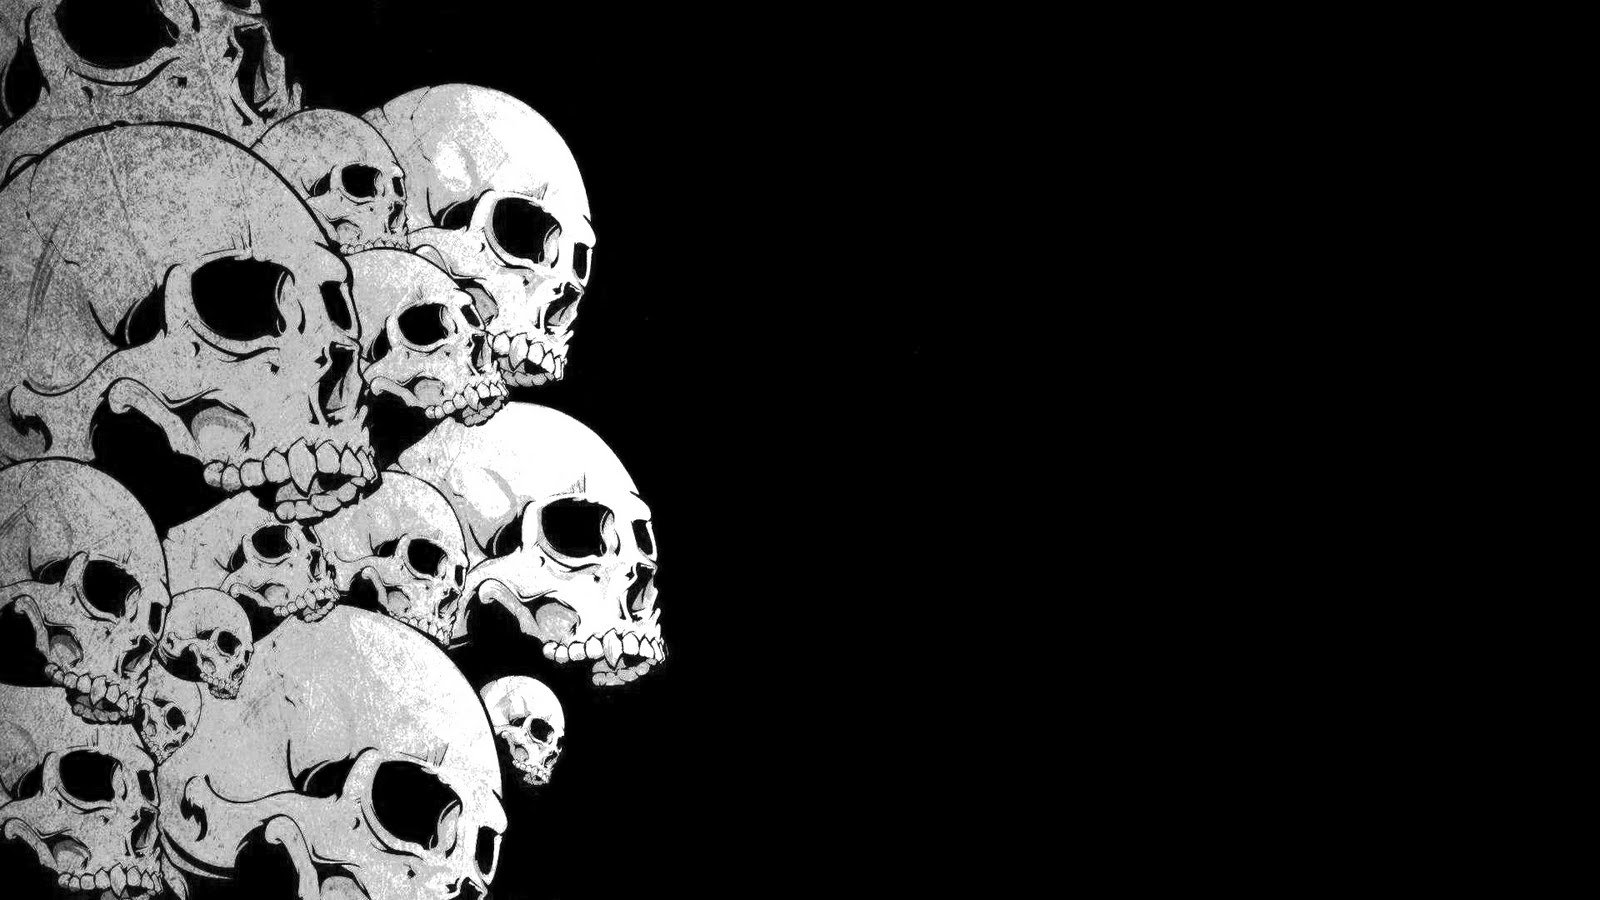 Wallpaper Hd 1080P Black And White Face Super Wallpapers 1600x900